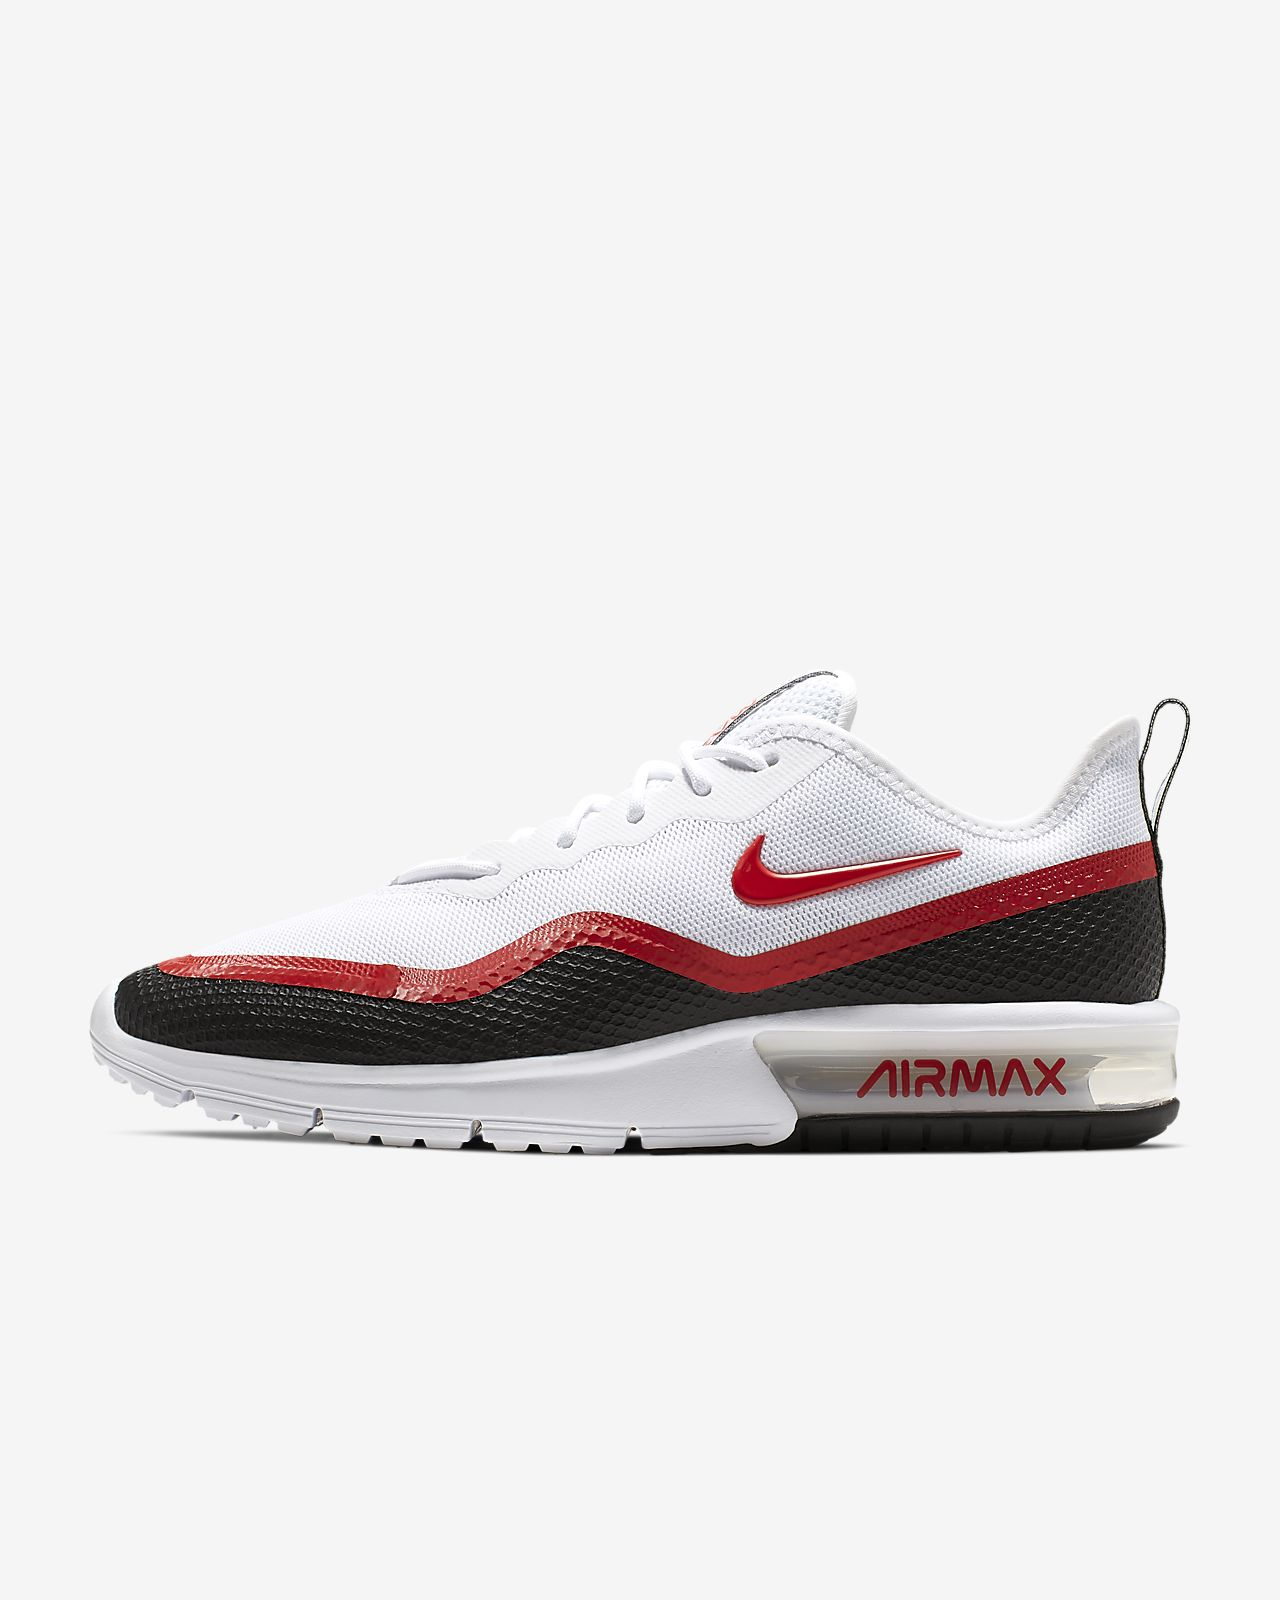 Nike Air Max Sequent 4.5 SE 男鞋